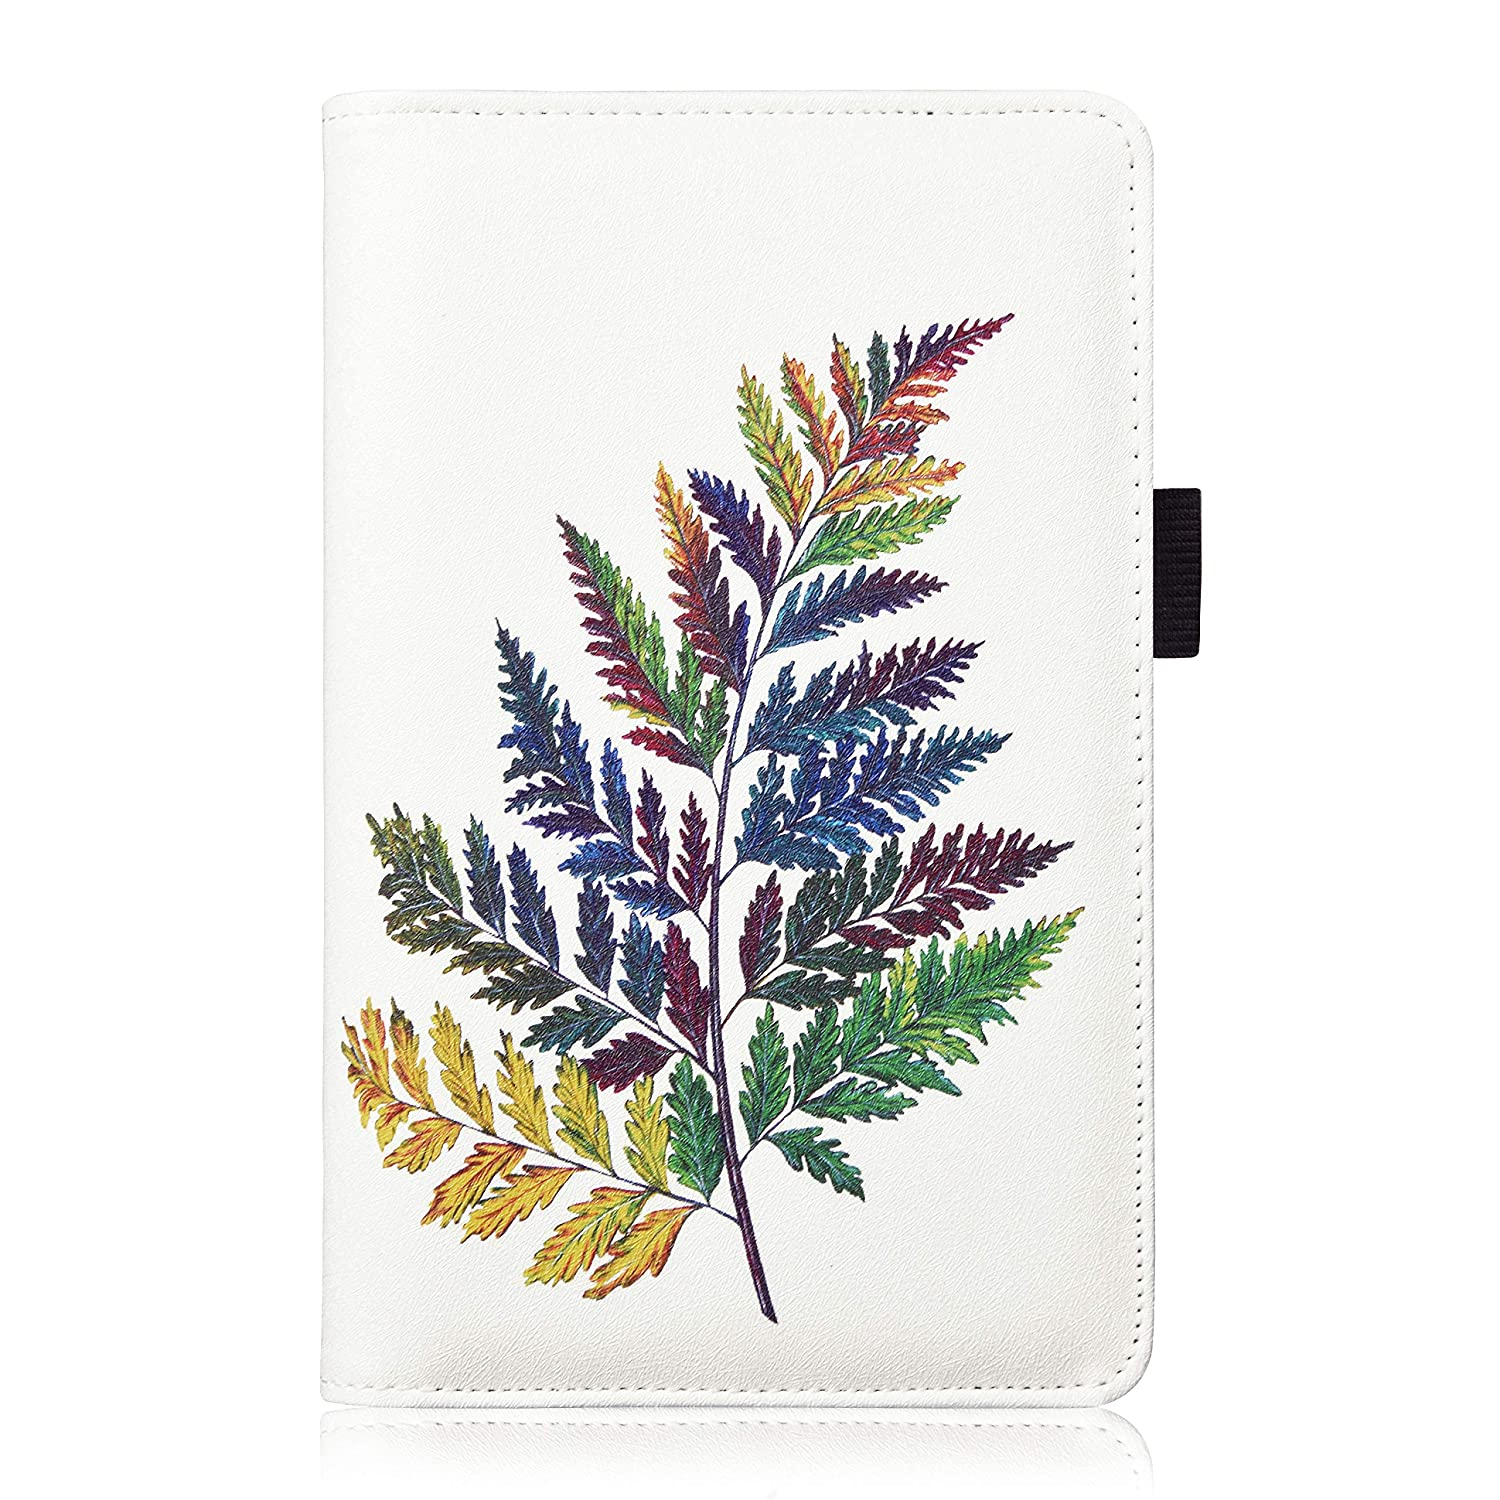 YOMFUN Plant Server Book for Waitress Book,Server Wallet Waiter Book Server Check Book Cute Serving Book Restaurant Waitstaff Book Colored-Leaf Guest Check Book Holder 5X 7.7